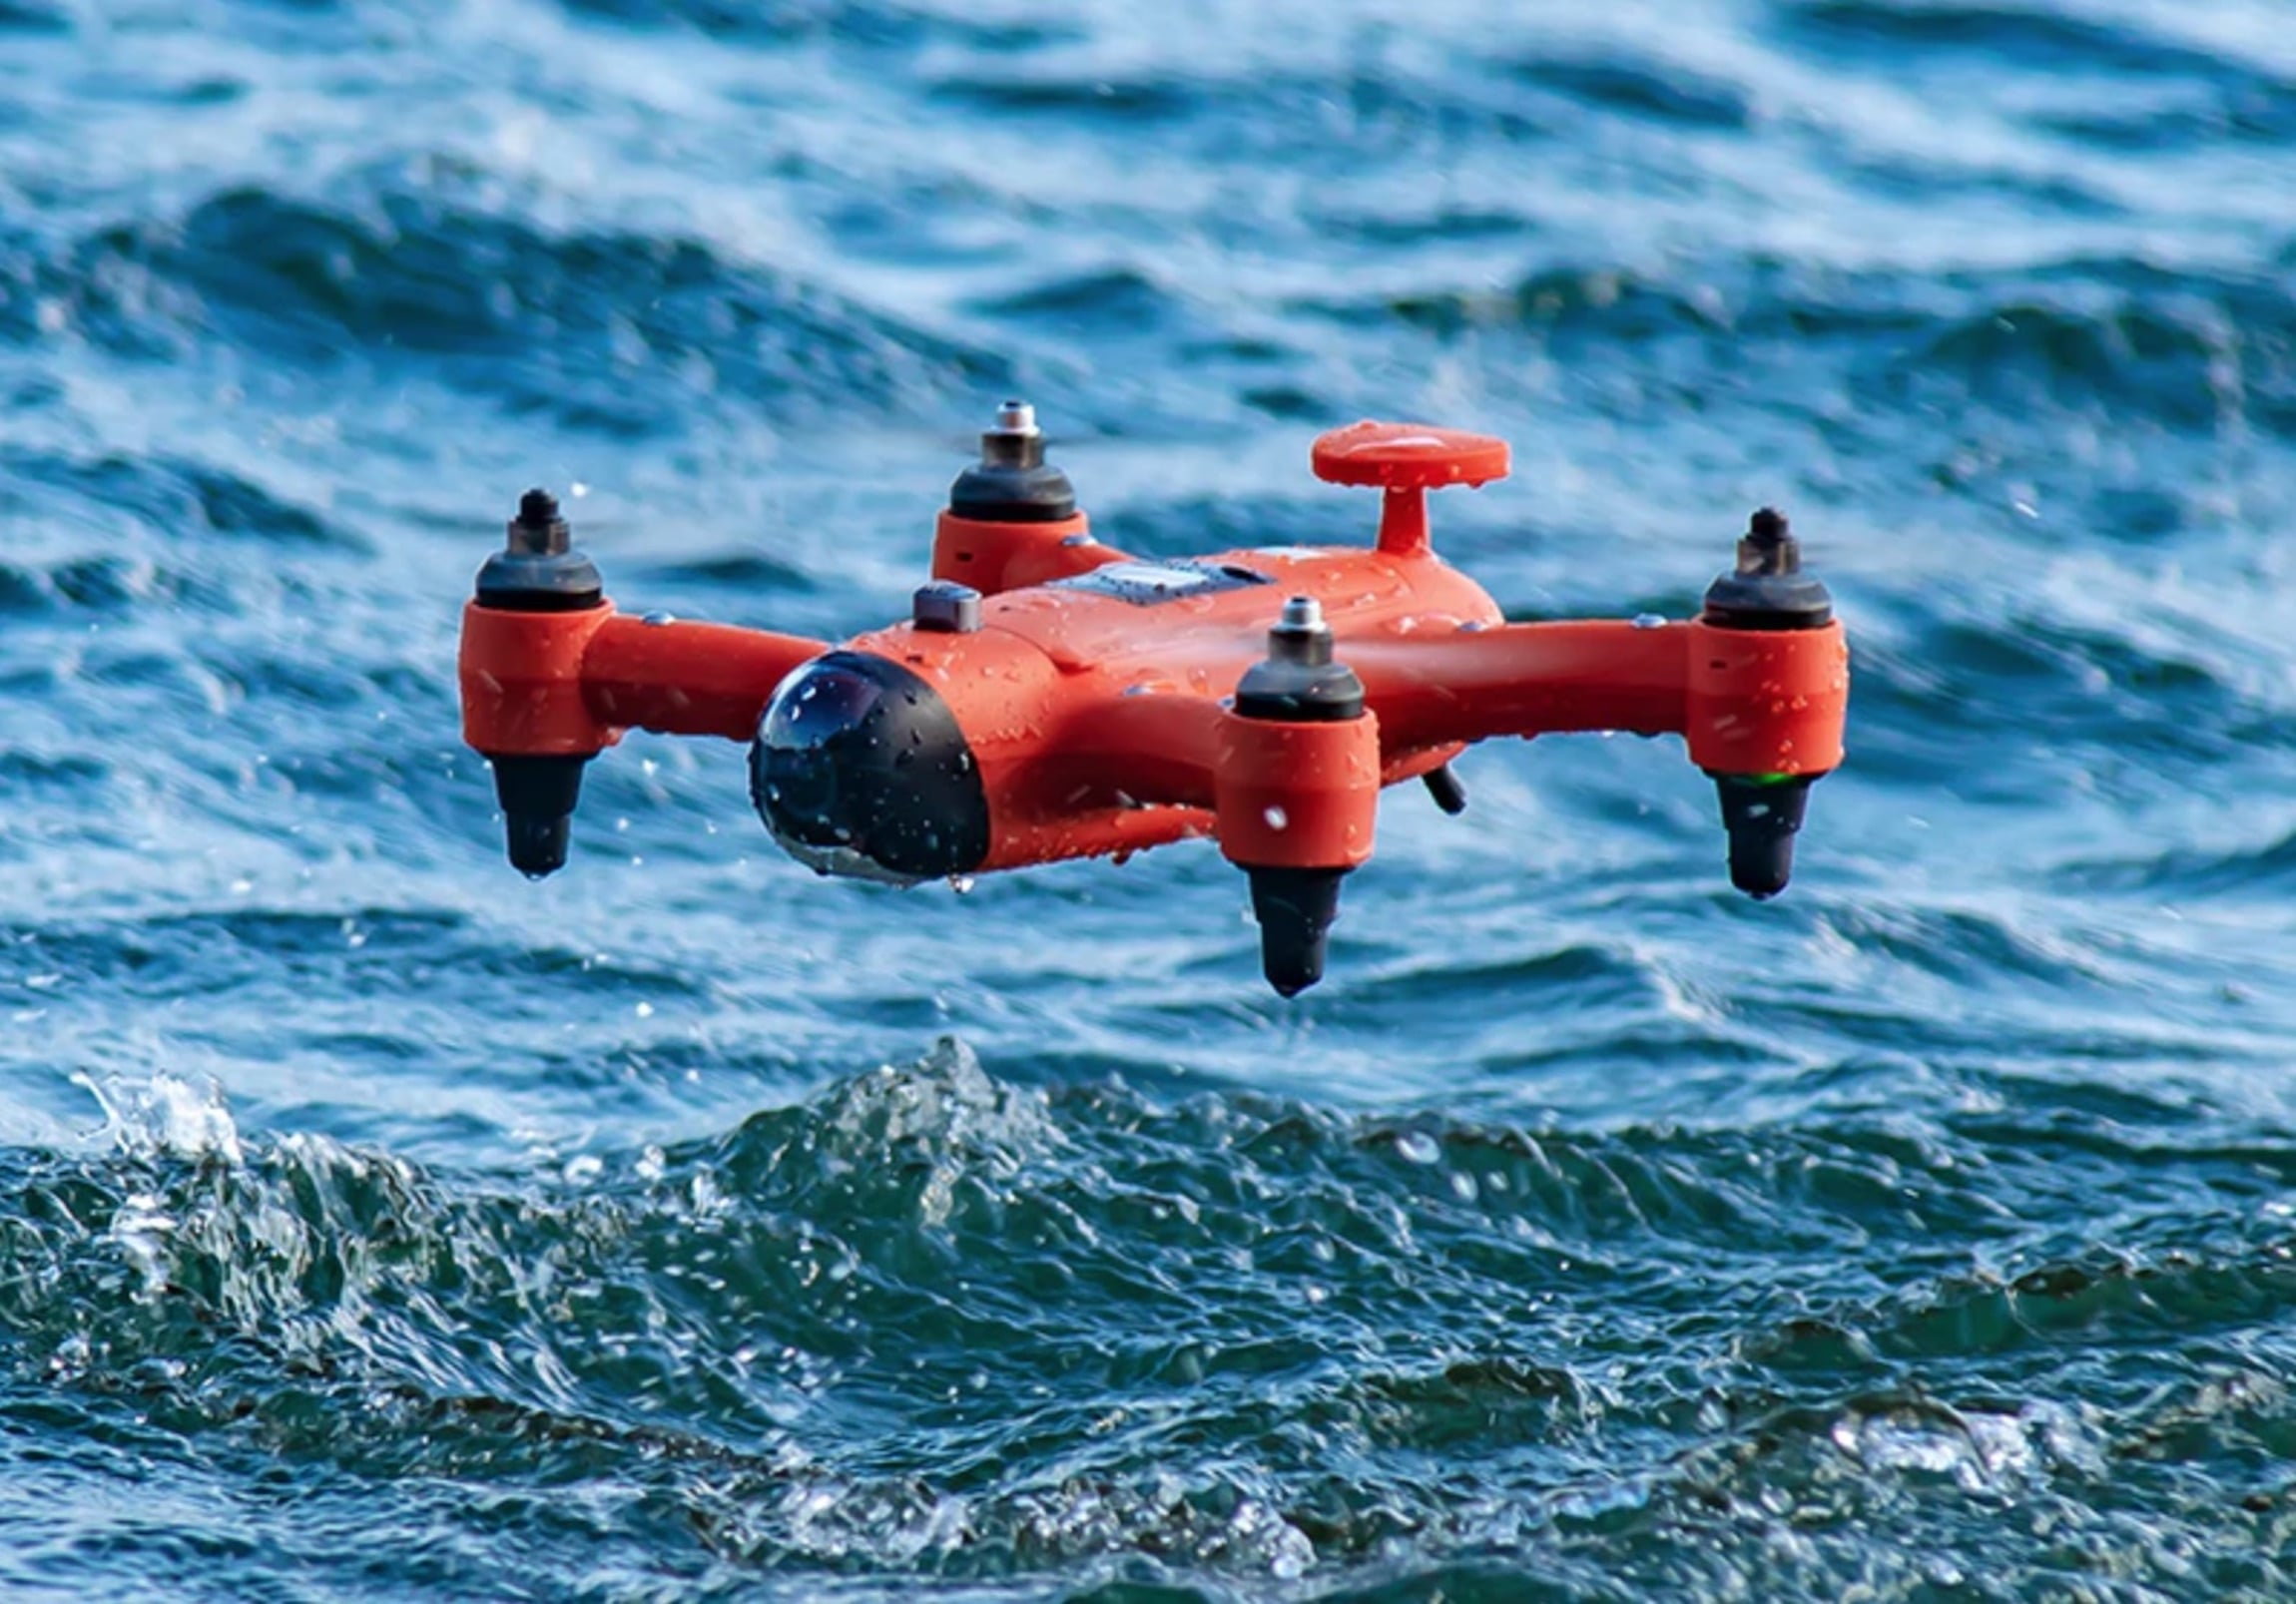 SwellPro Spry Waterproof Drone can fly, float, and submerge